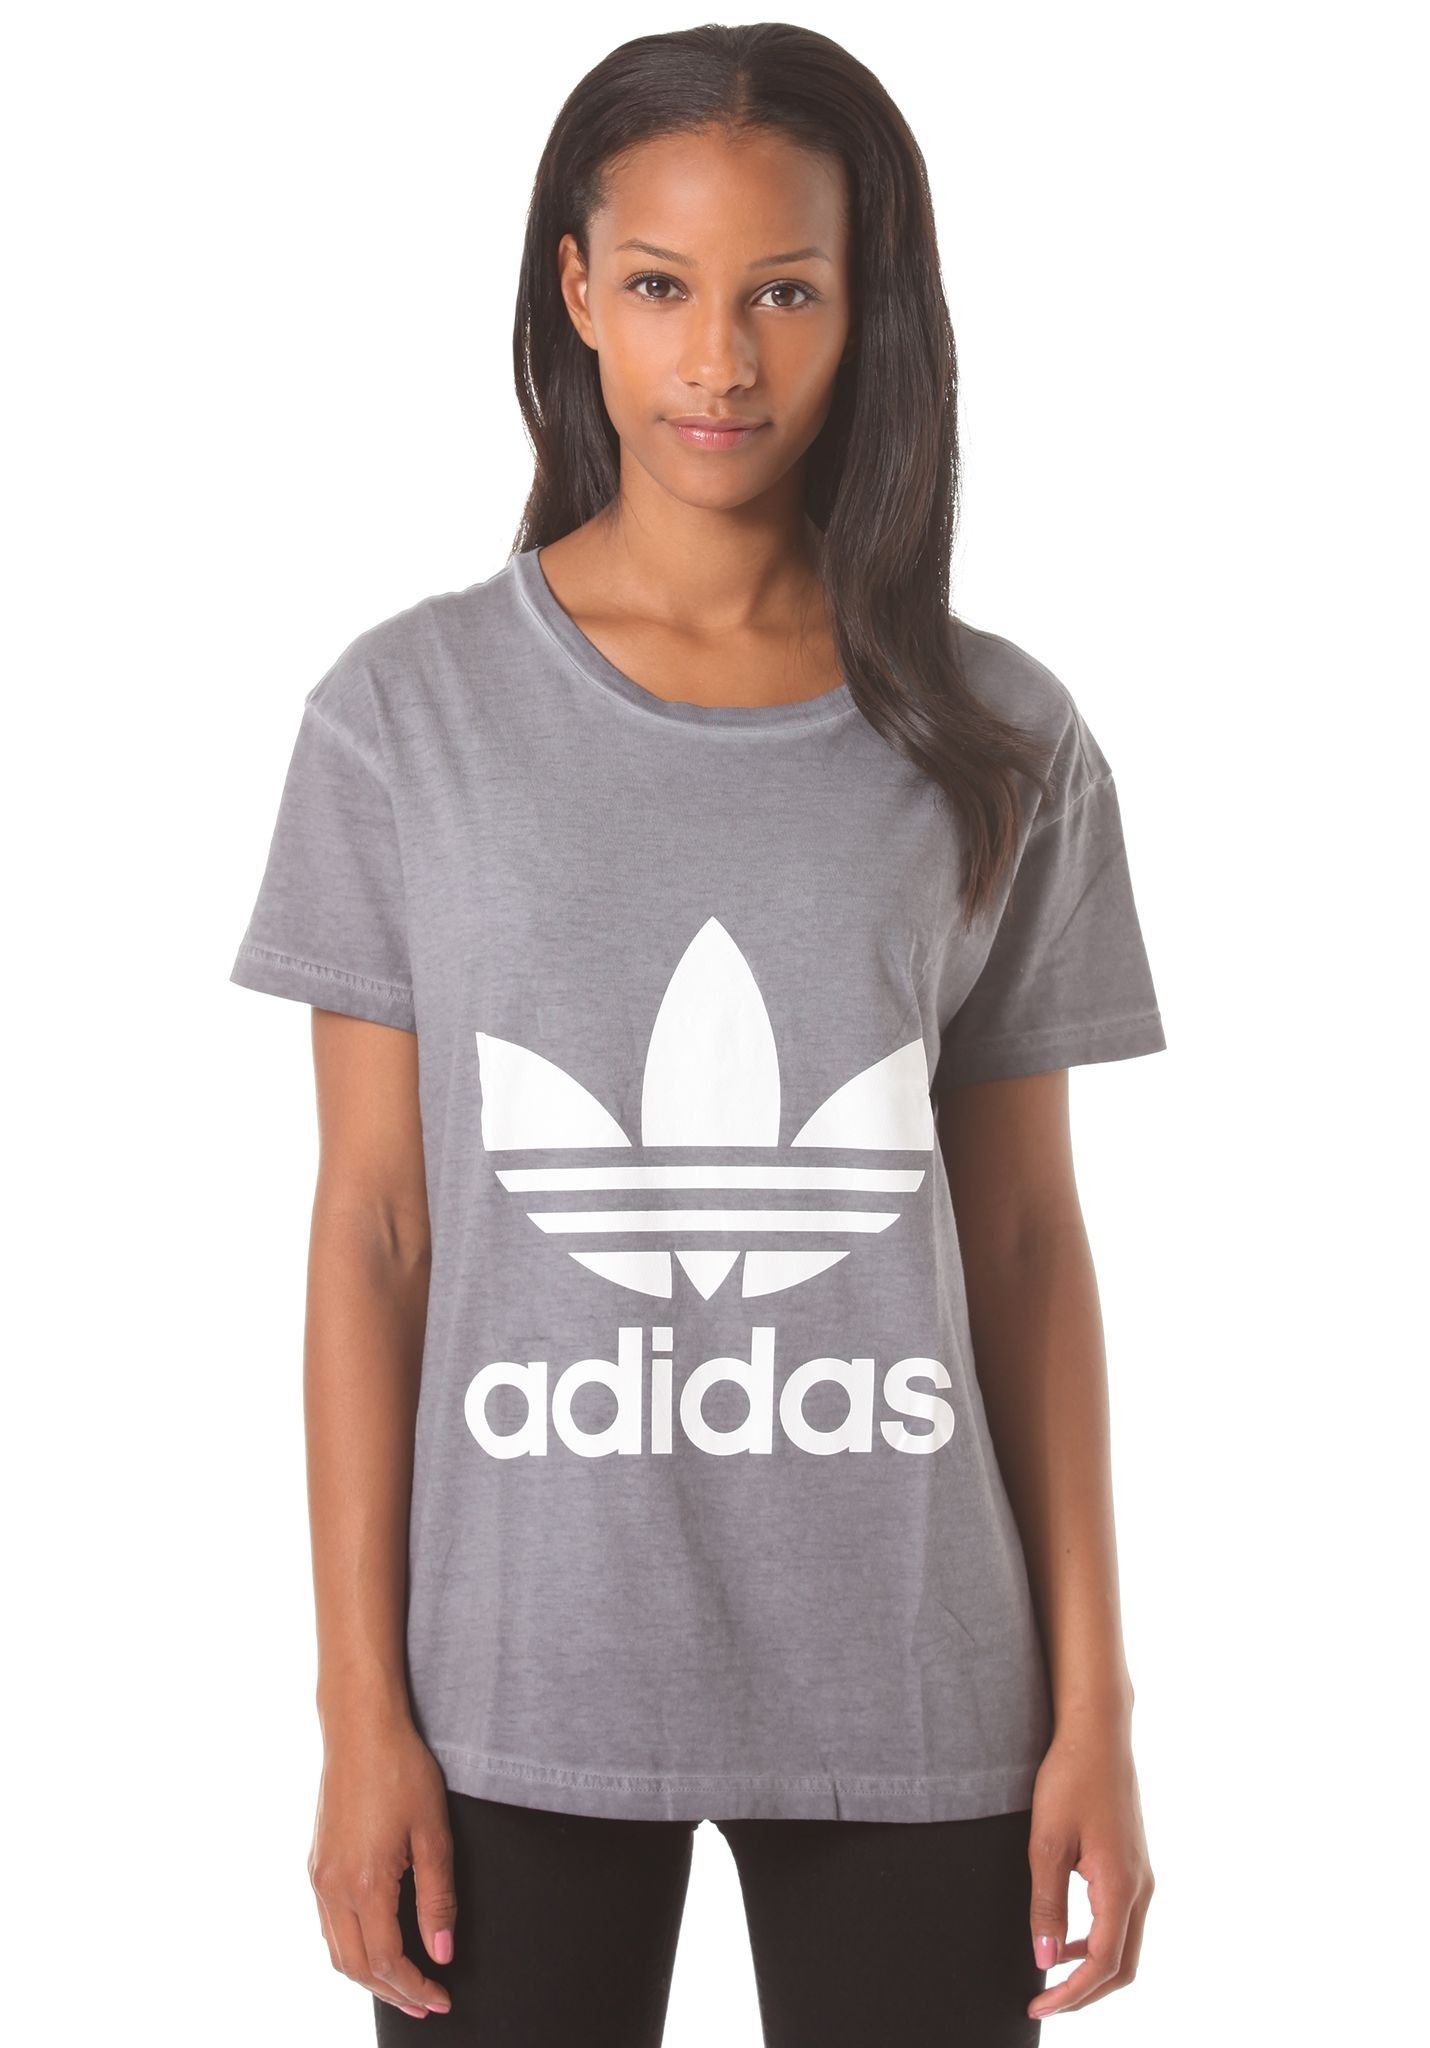 buy cheap online adidas t shirt grey. Black Bedroom Furniture Sets. Home Design Ideas